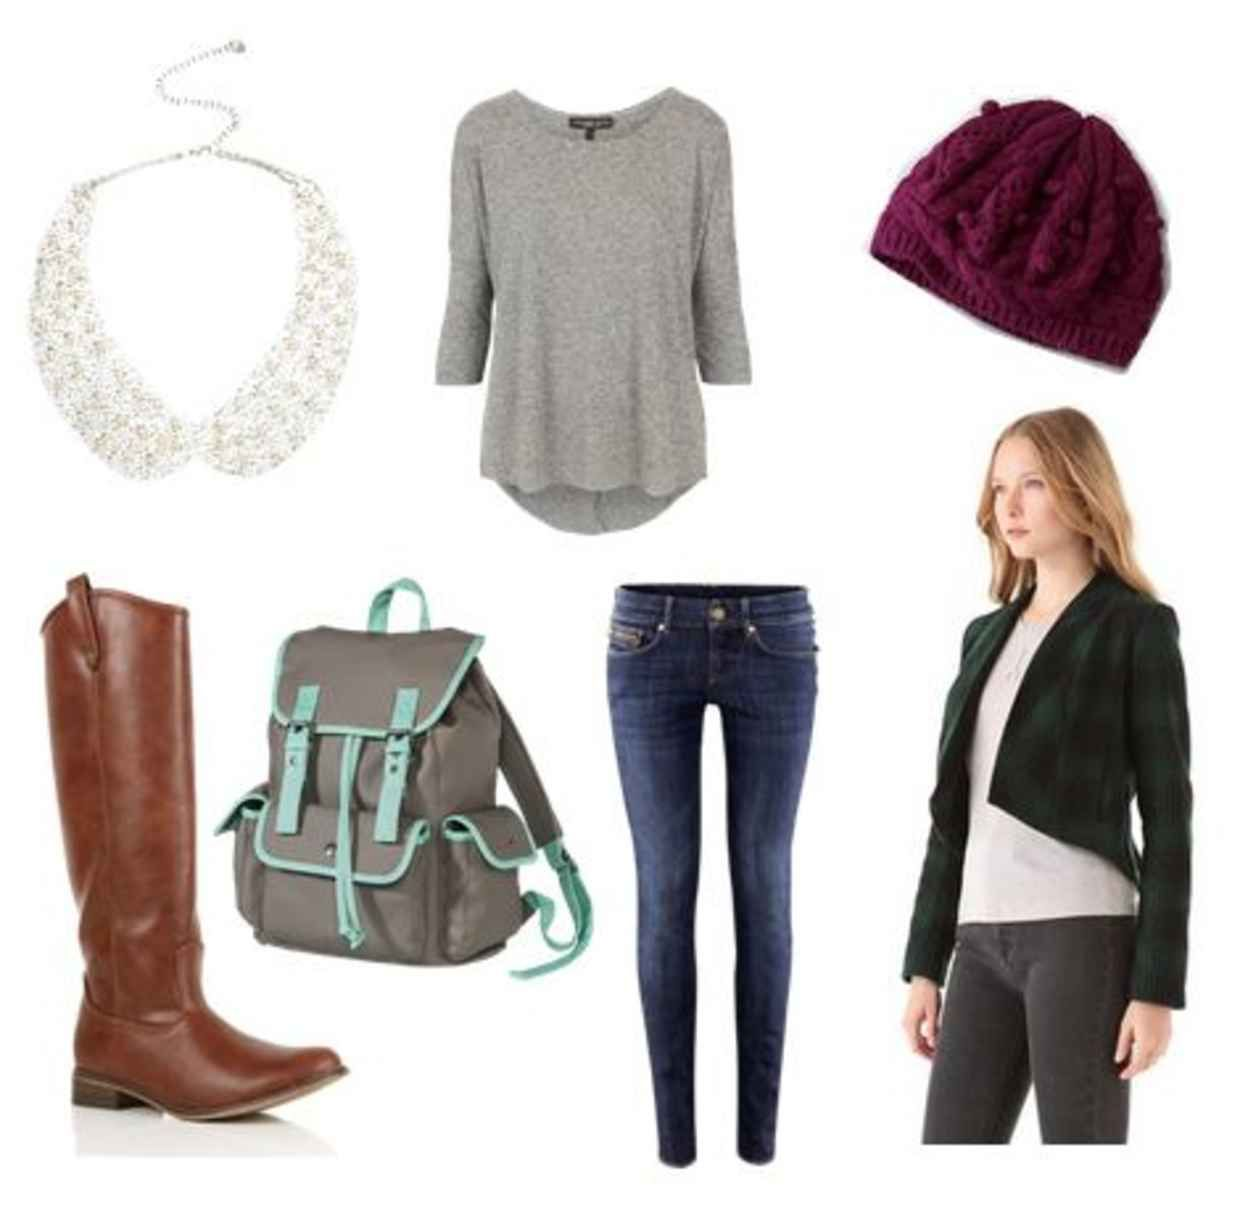 Chic: Geek fashion inspired by castle exclusive photo